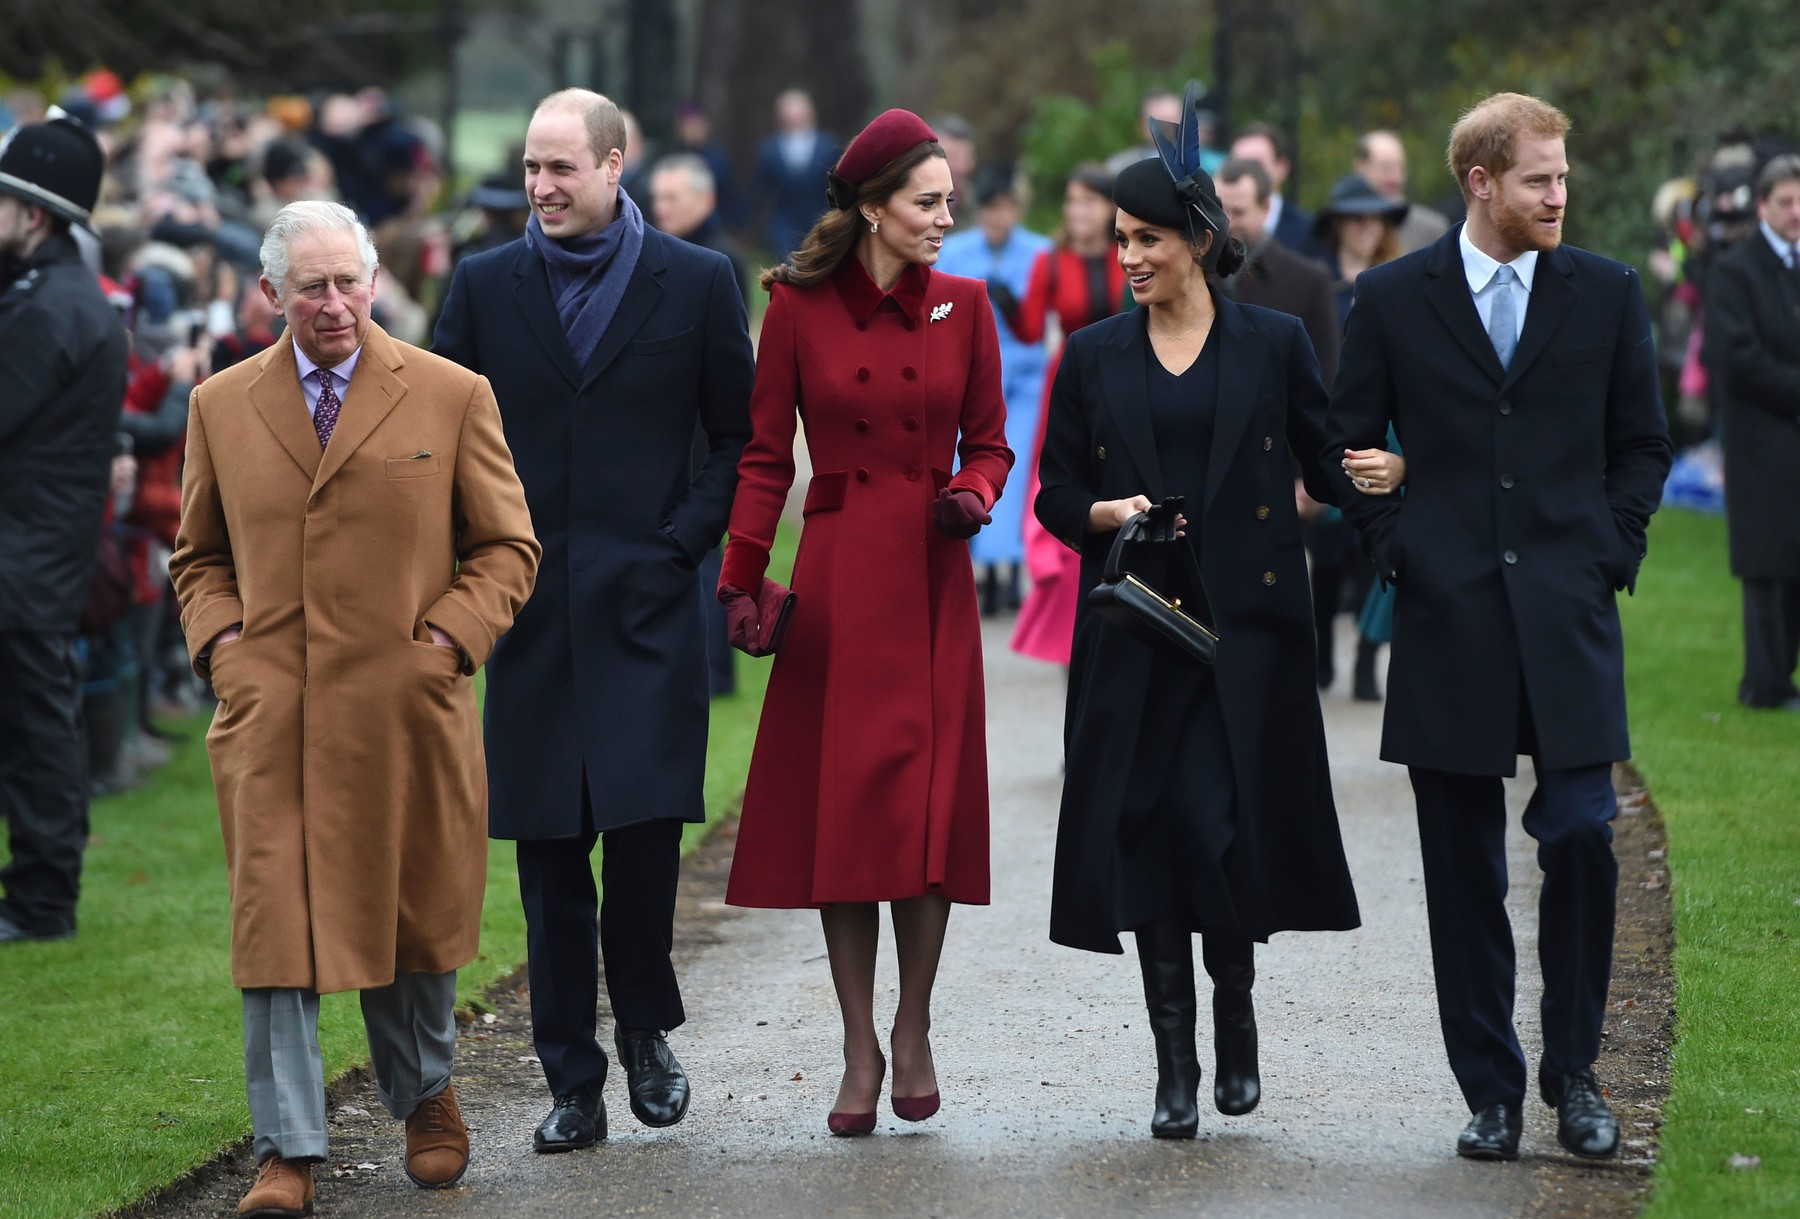 File photo dated 25/12/18 of (left to right)The Prince of Wales, the Duke of Cambridge, the Duchess of Cambridge, the Duchess of Sussex and the Duke of Sussex arriving to attend the Christmas Day morning church service at St Mary Magdalene Church in Sandringham, Norfolk. Funding for the Sussexes and the Cambridges contributed to a £5.6 million bill for the Prince of Wales in Harry and Meghans final year as senior royals, accounts show. The accounts run from April 2019 to the end of March 2020  just after the UK went into lockdown and Charles contracted coronavirus.,Image: 559788505, License: Rights-managed, Restrictions: FILE PHOTO, Model Release: no, Credit line: Joe Giddens / PA Images / Profimedia